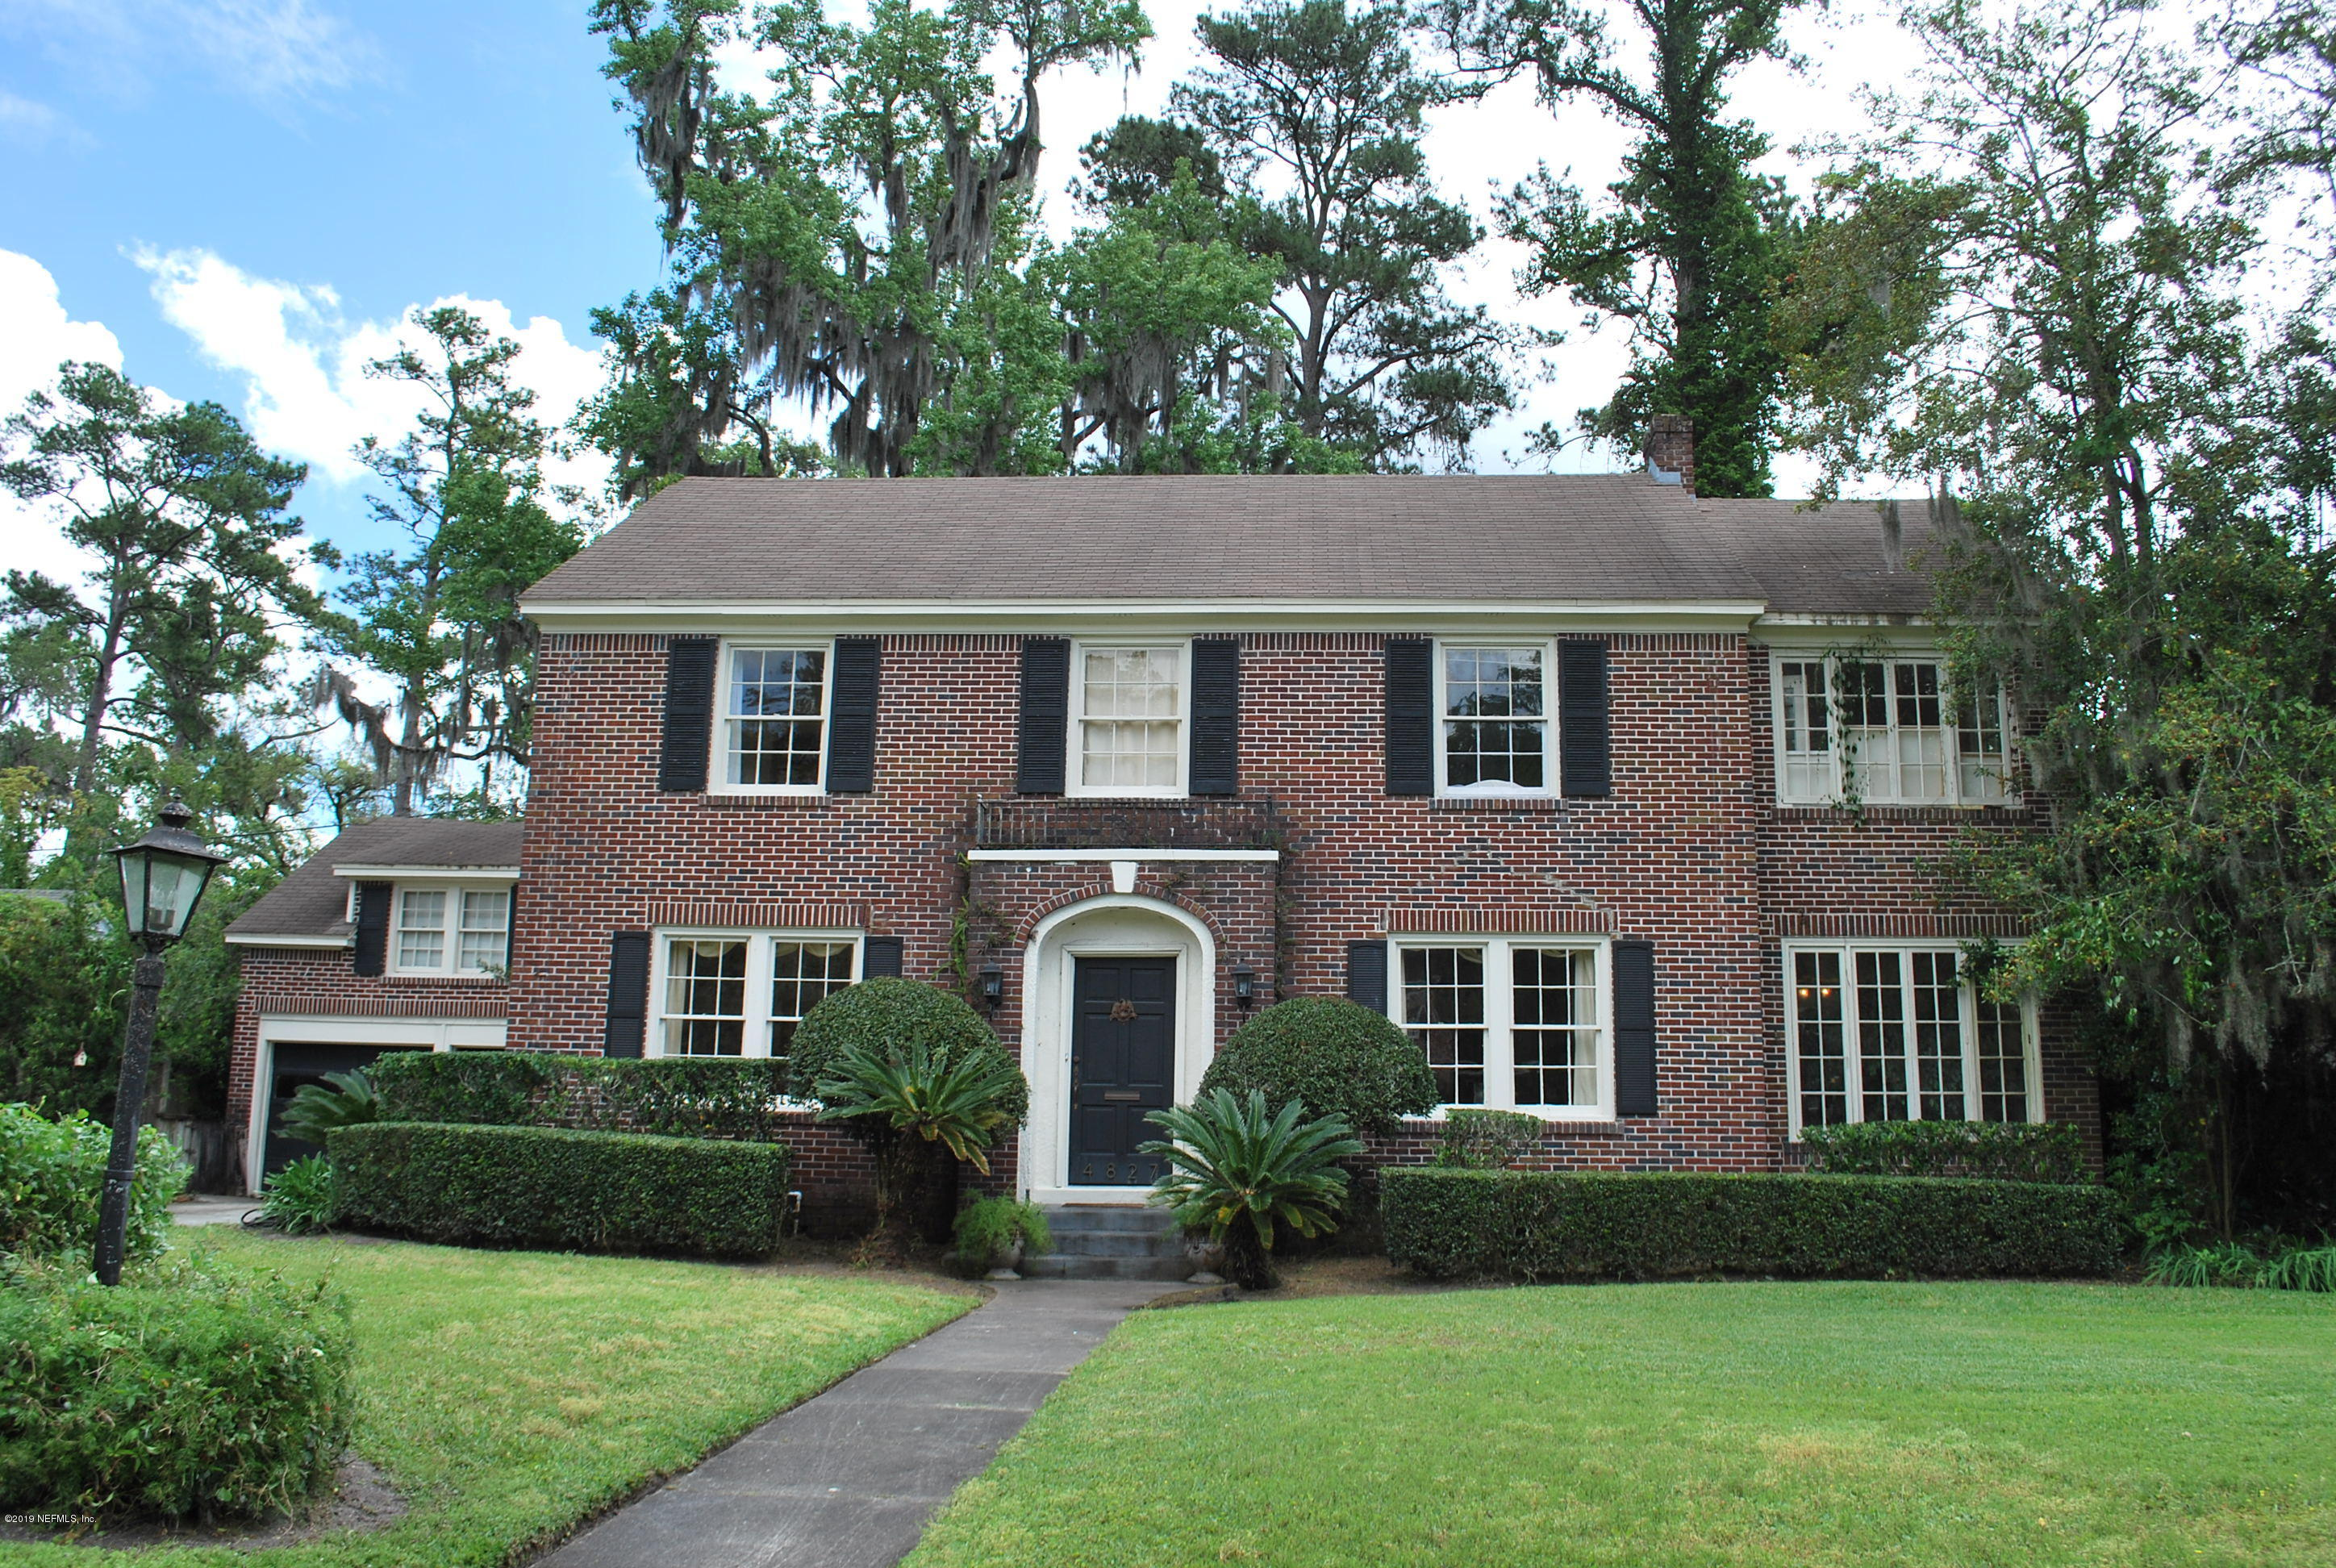 4827 ALGONQUIN, JACKSONVILLE, FLORIDA 32210, 4 Bedrooms Bedrooms, ,3 BathroomsBathrooms,Residential - single family,For sale,ALGONQUIN,989542